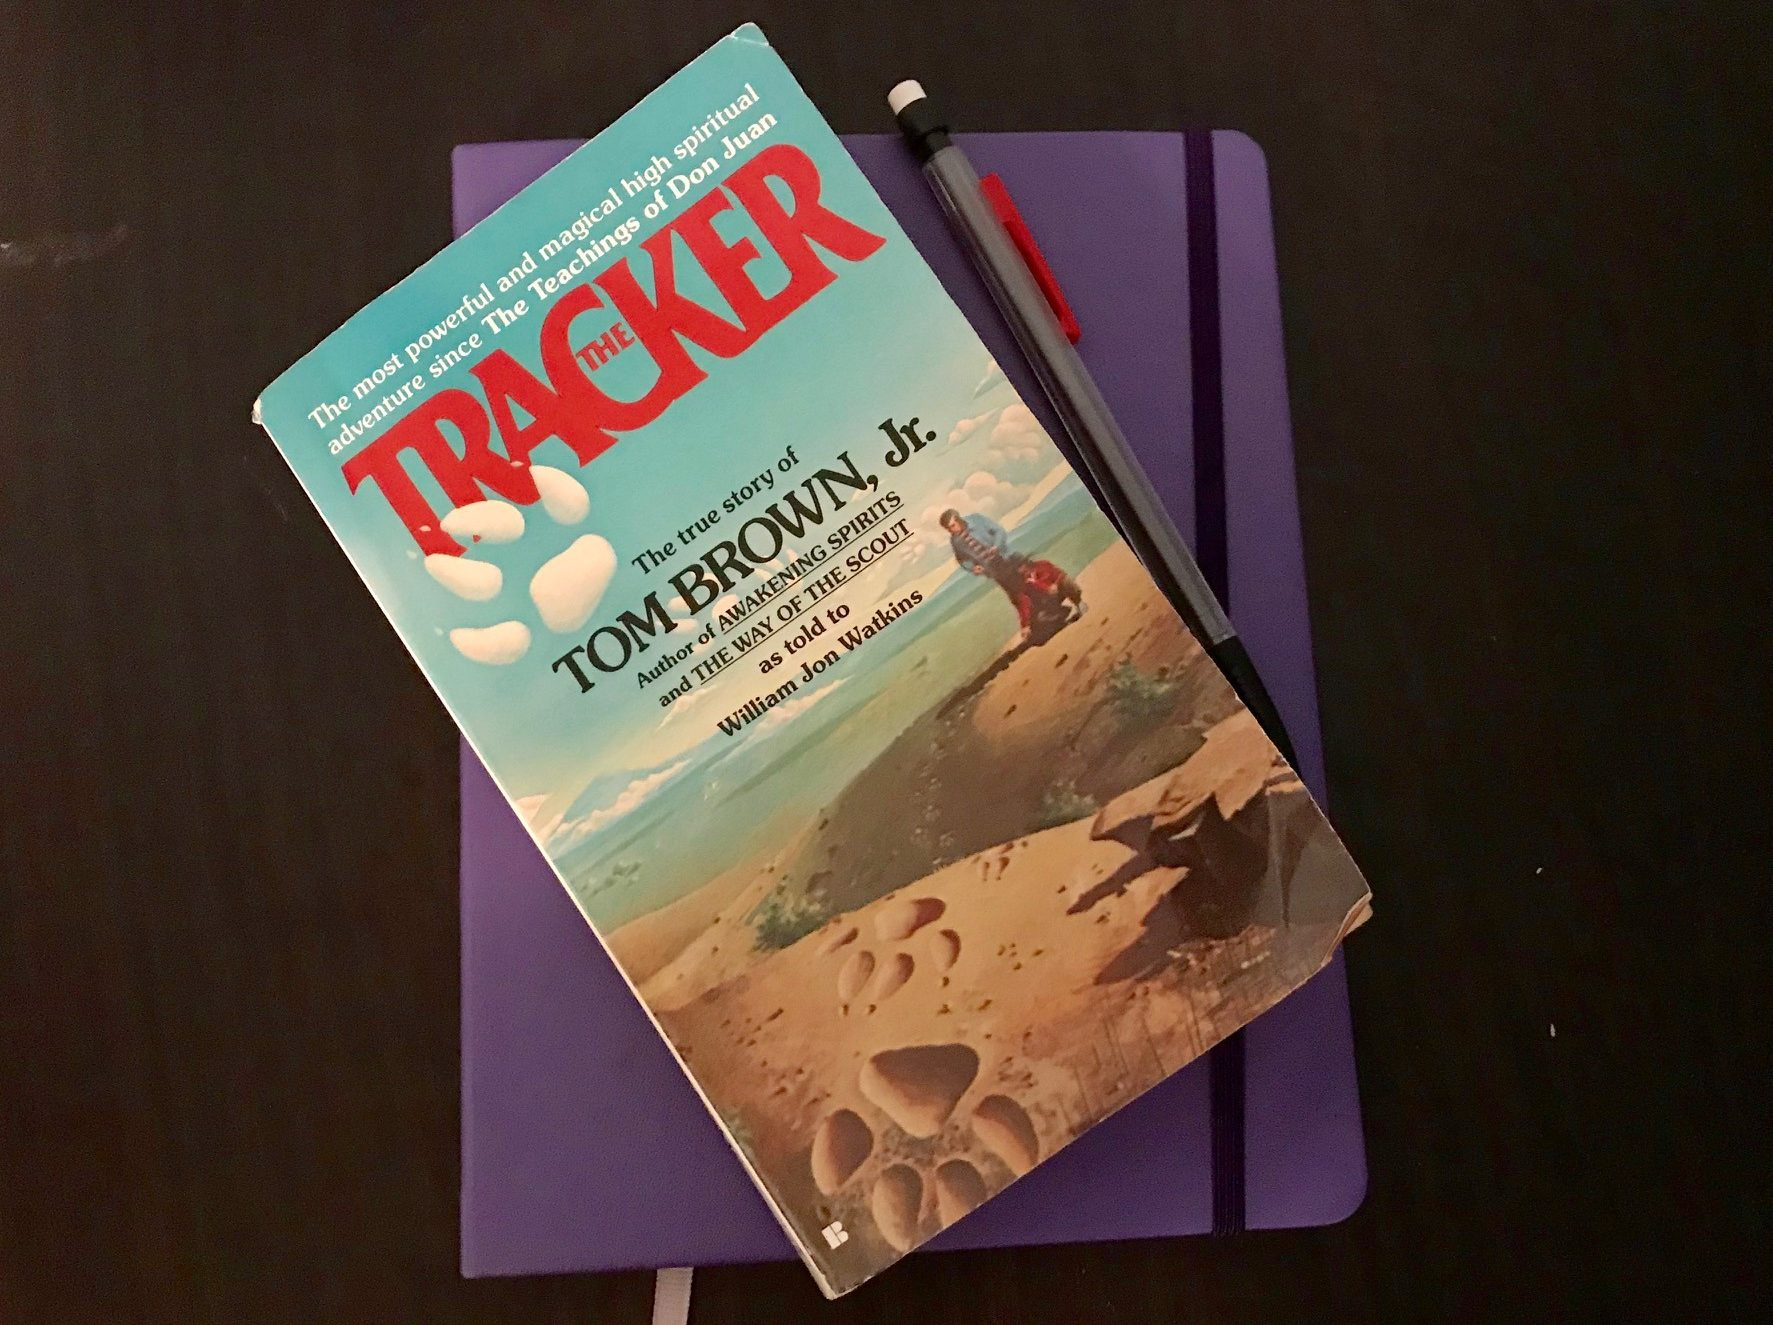 A copy of the Tracker by Tom Brown, Jr. sitting on a journal